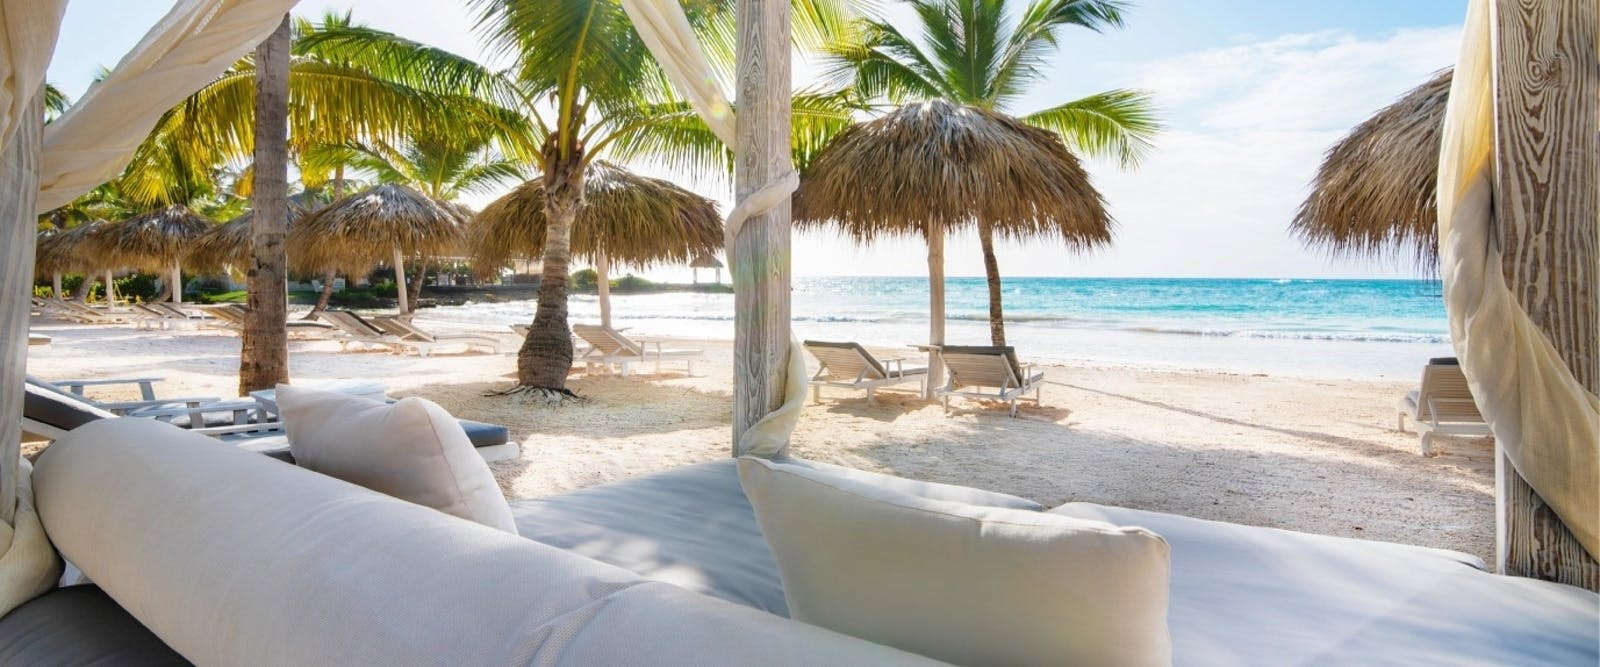 Beach Club Bed at Eden Roc at Cap Cana Boutique Suites & Beach Club, Dominican Republic